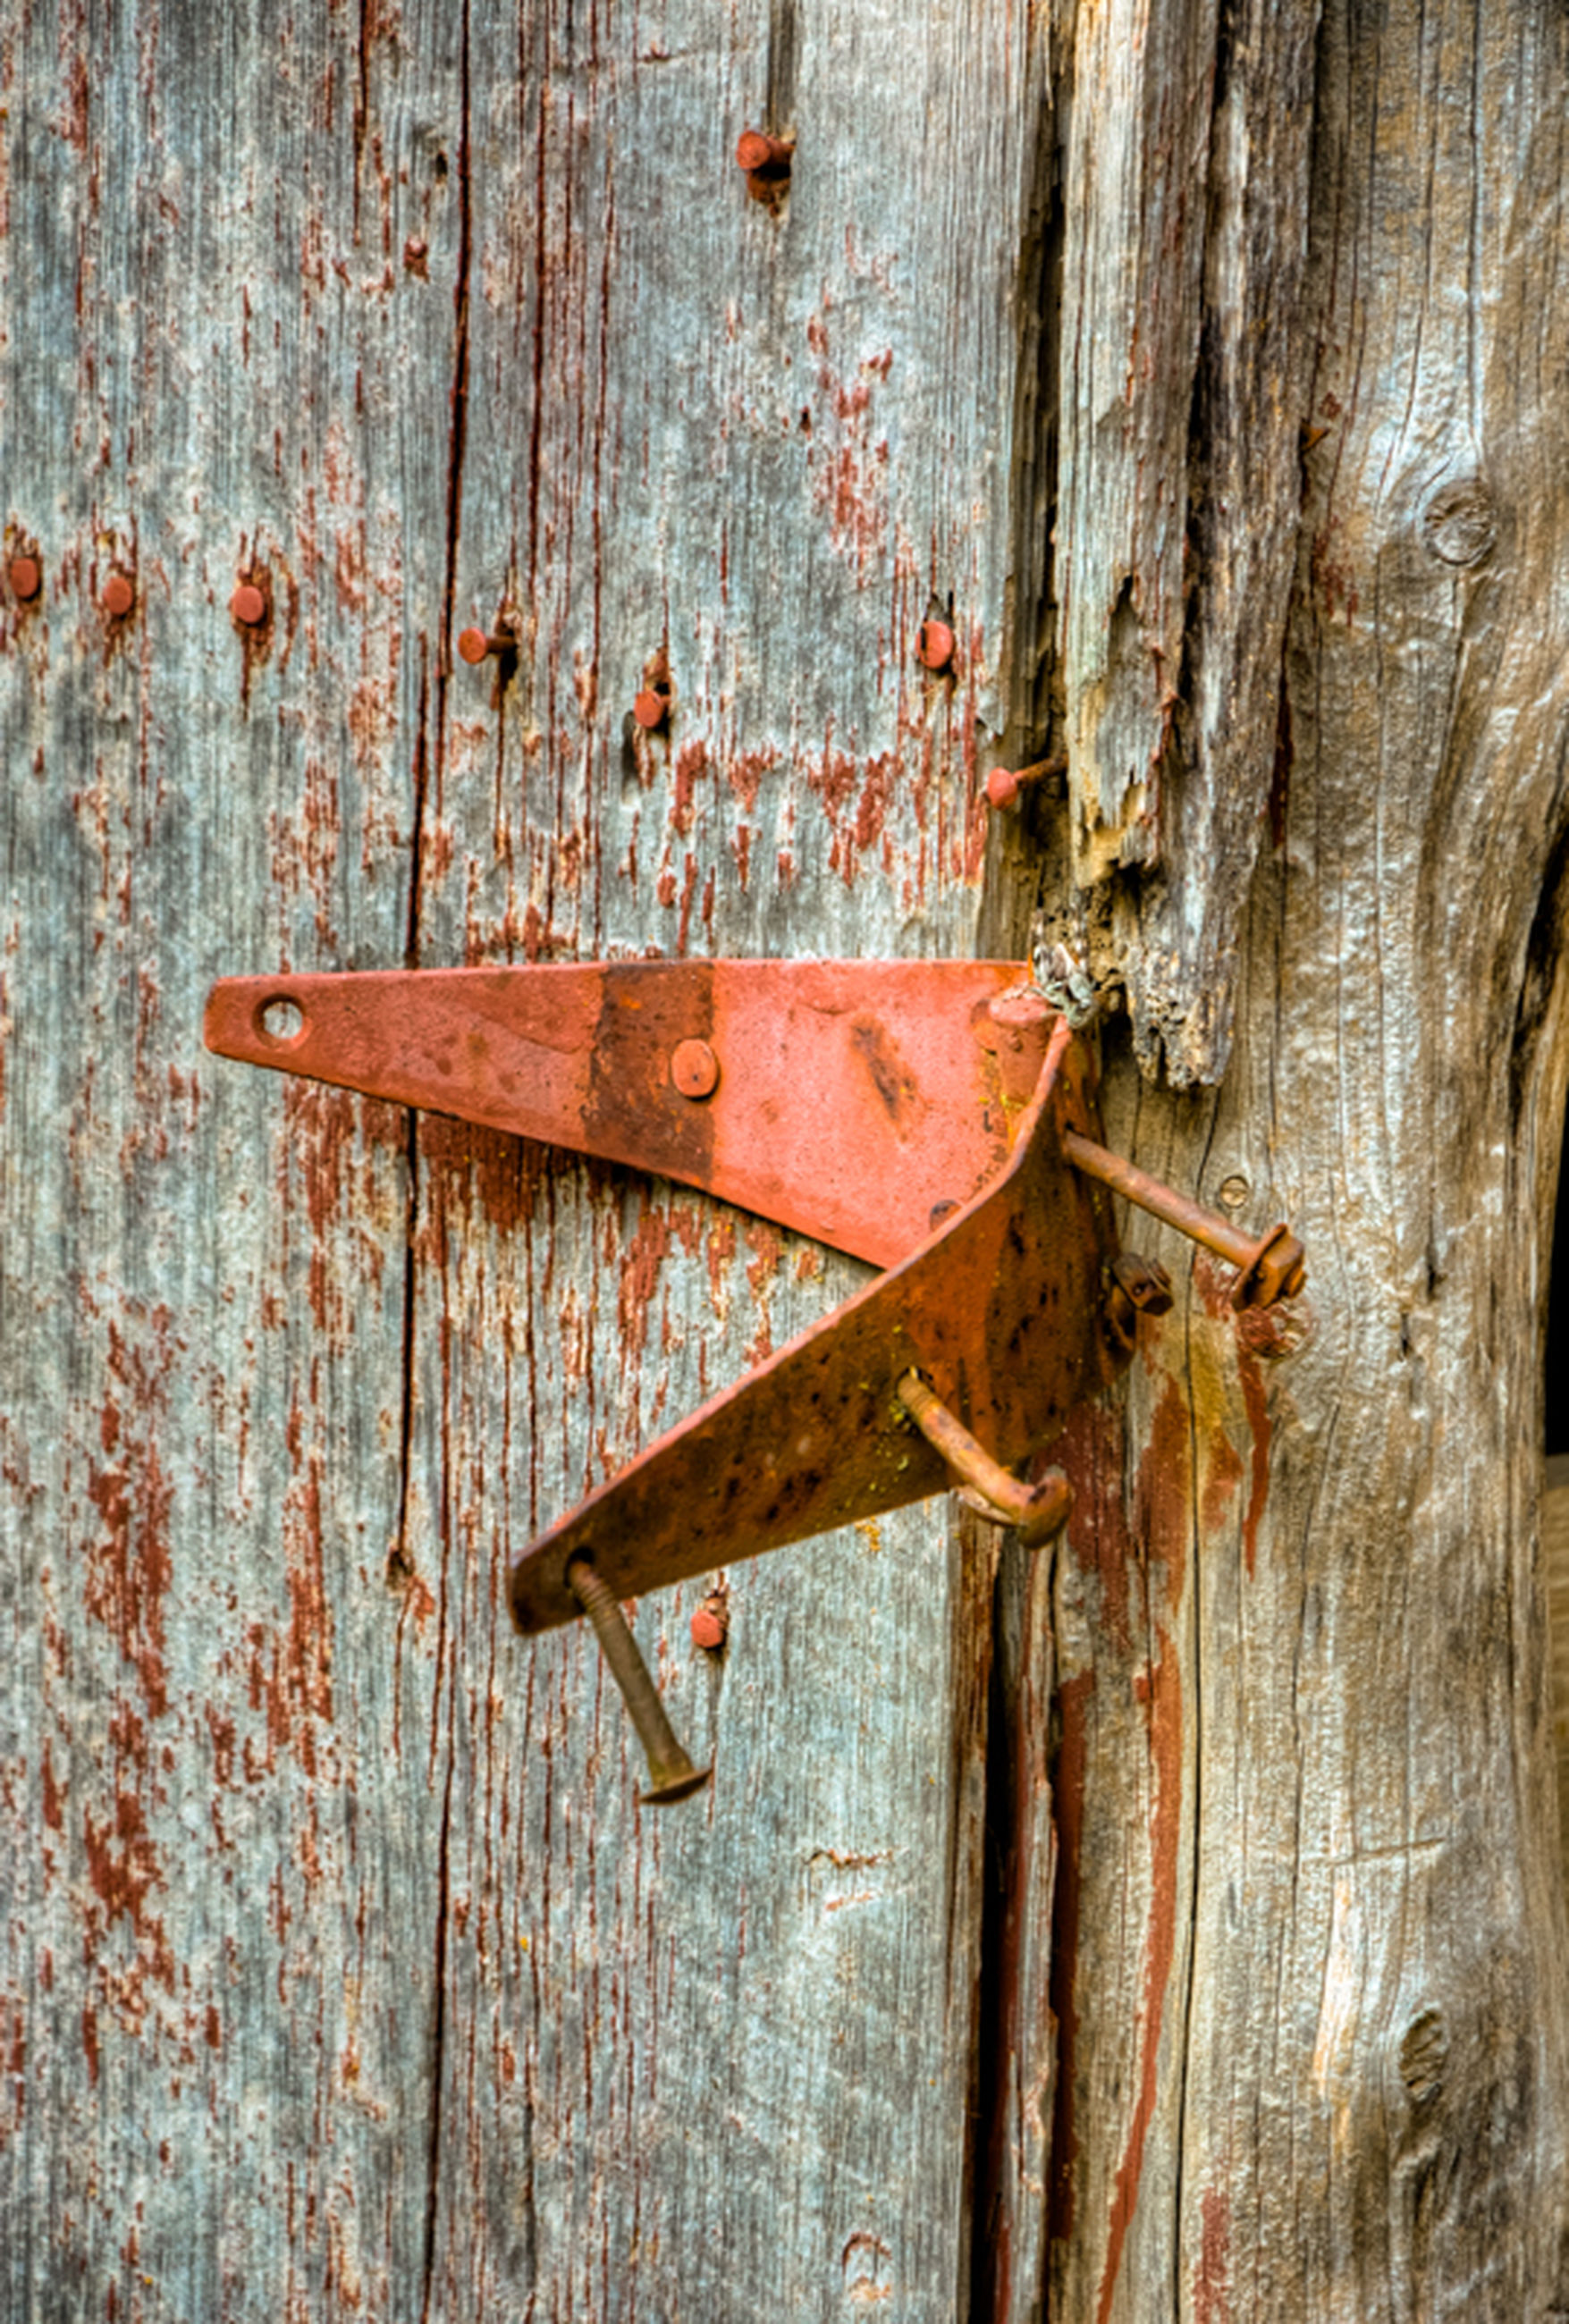 wood - material, wooden, old, weathered, abandoned, damaged, wood, deterioration, rusty, run-down, plank, obsolete, close-up, door, textured, bad condition, metal, full frame, no people, day